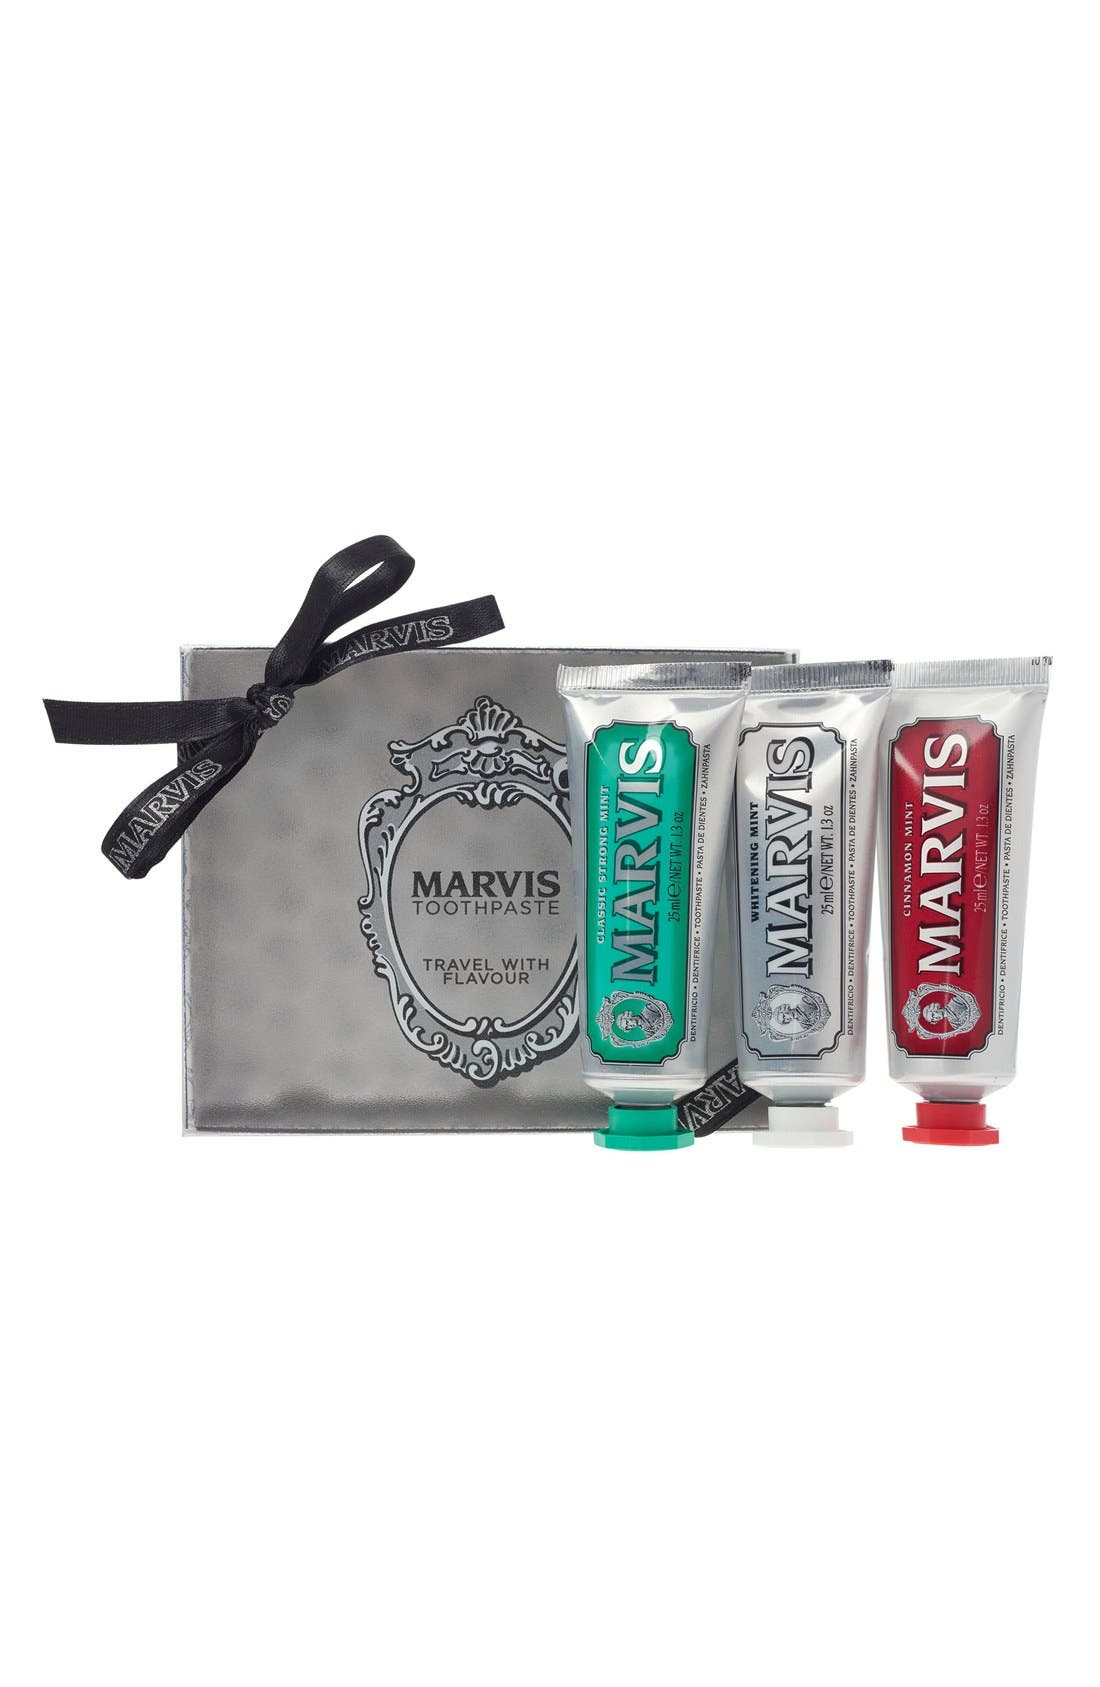 C.O. Bigelow® Marvis Travel with Flavor Set (Limited Edition) ($19 Value)